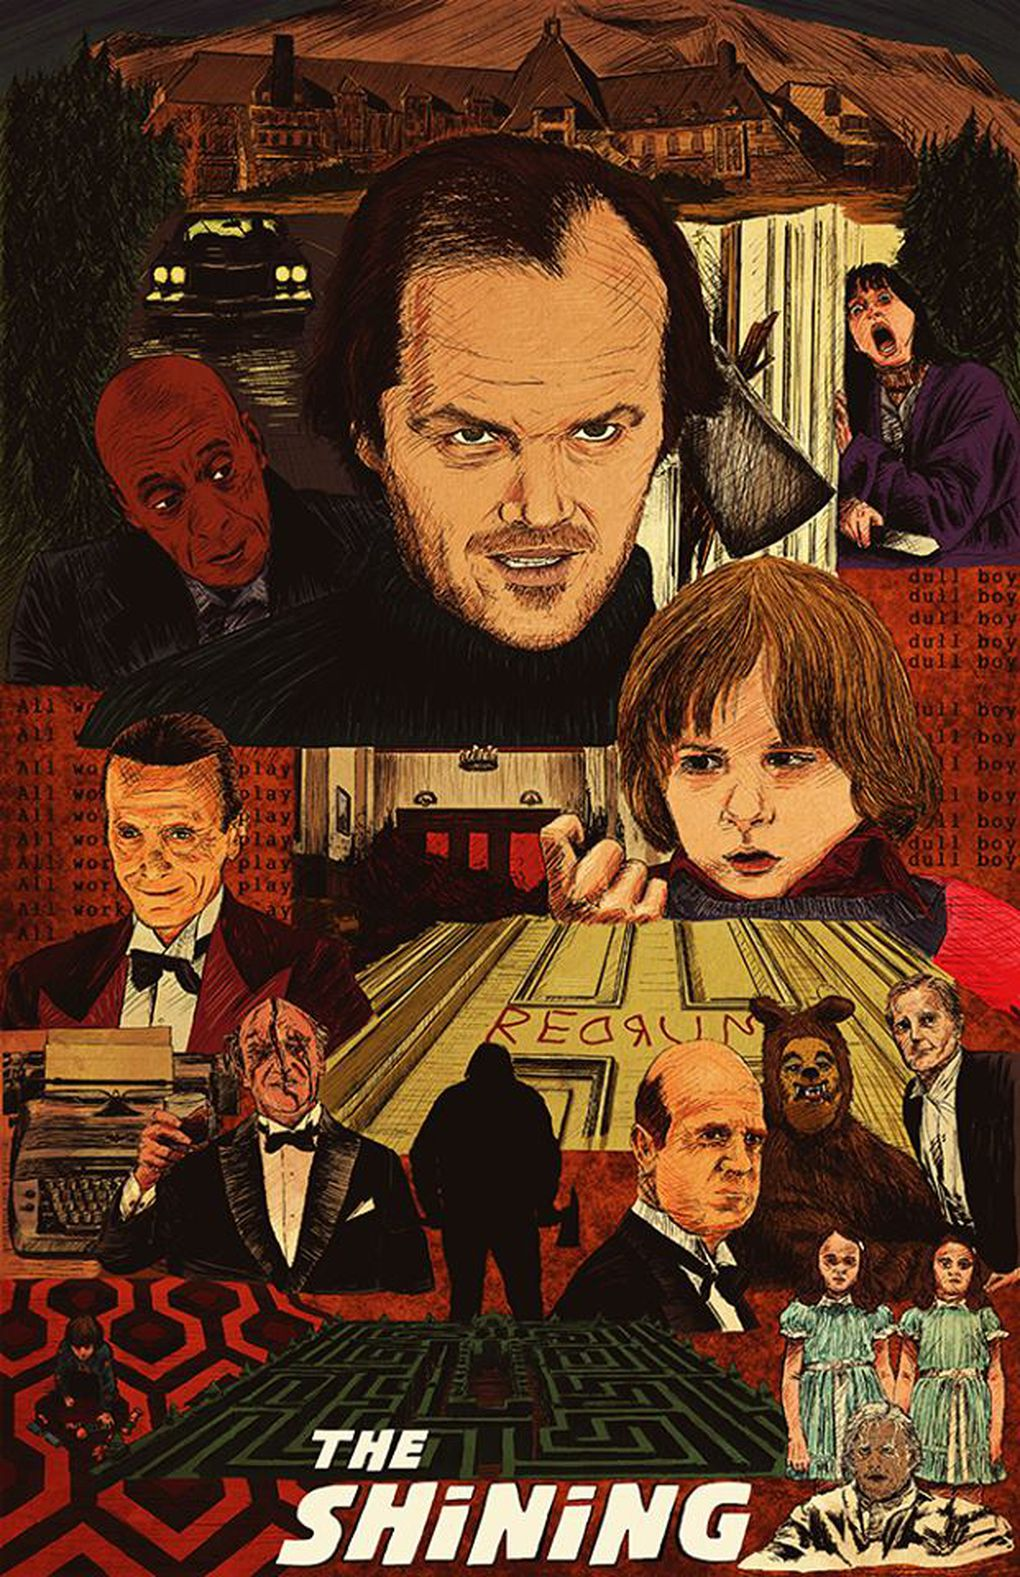 essay on the shining by stephen king udgereport270 web fc2 com essay on the shining by stephen king